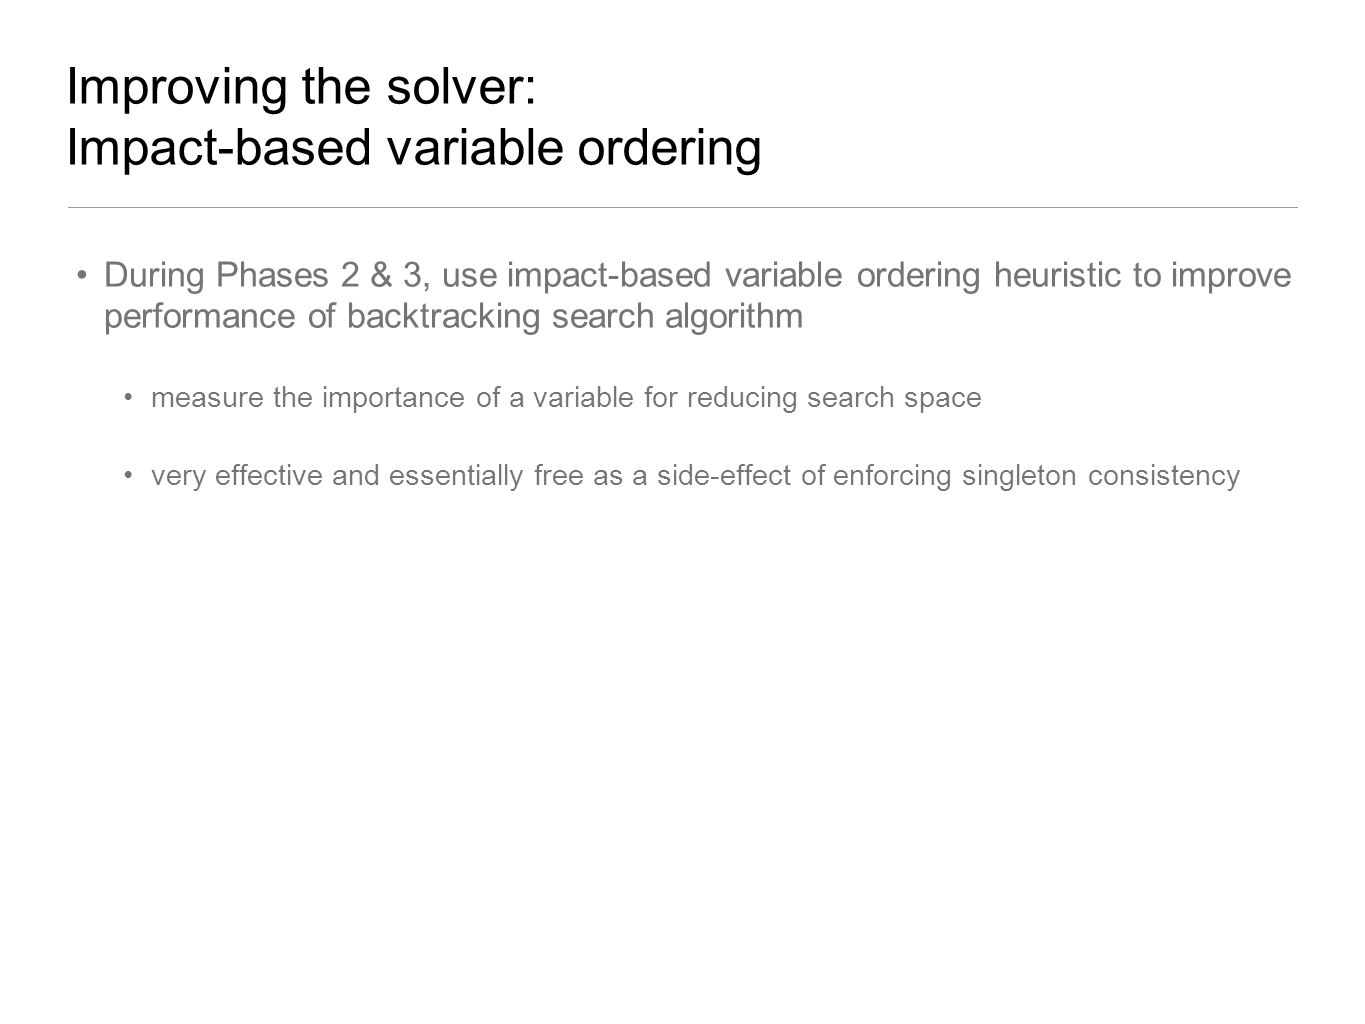 Improving the solver: Impact-based variable ordering